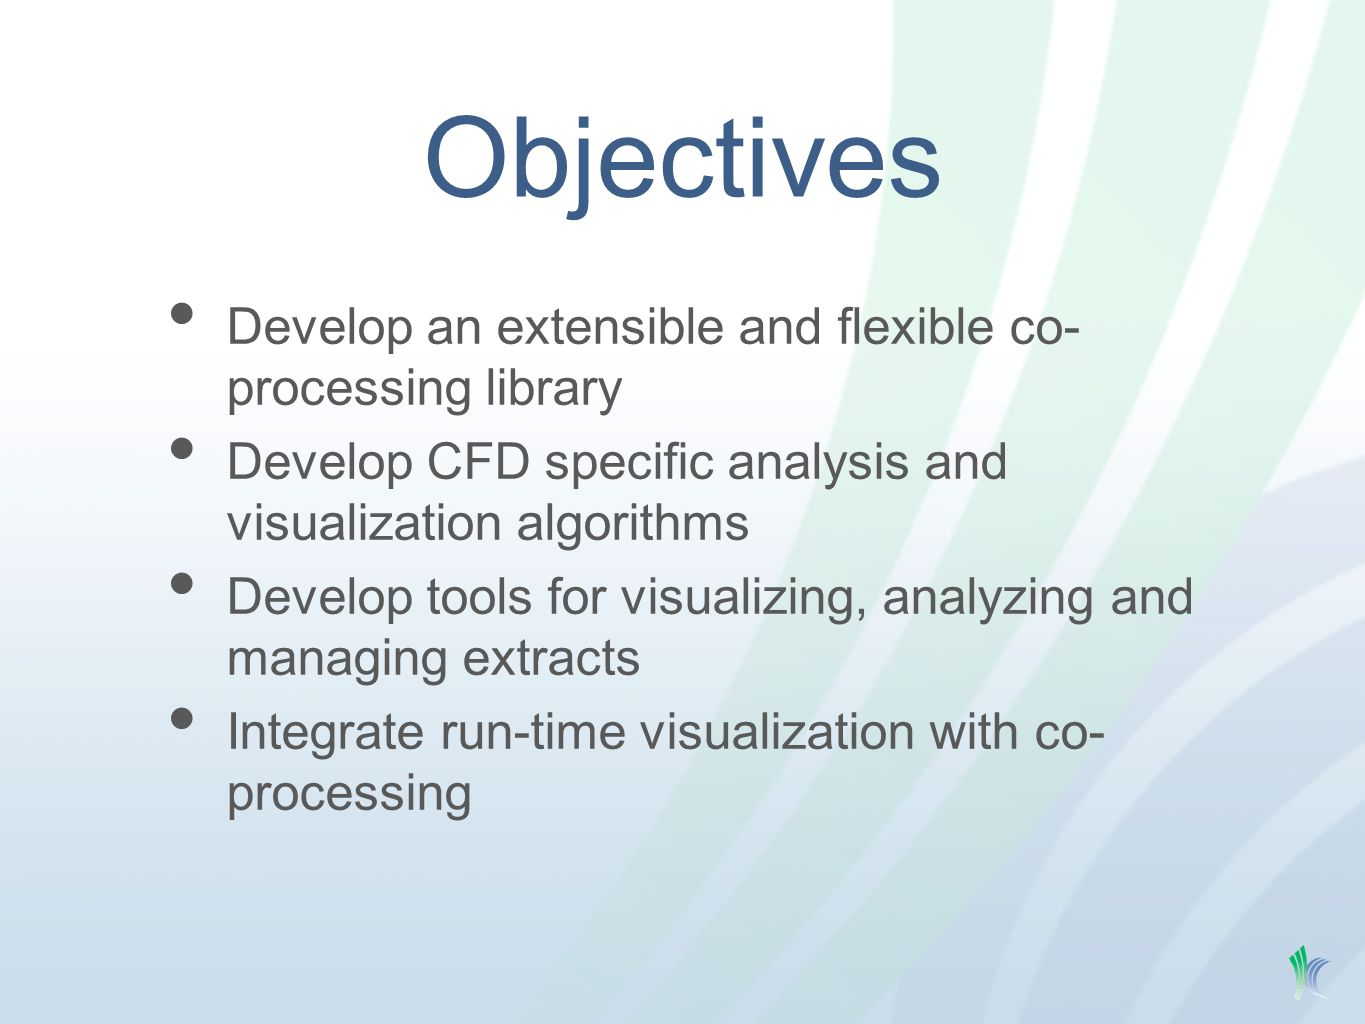 Objectives Develop an extensible and flexible co- processing library Develop CFD specific analysis and visualization algorithms Develop tools for visualizing, analyzing and managing extracts Integrate run-time visualization with co- processing